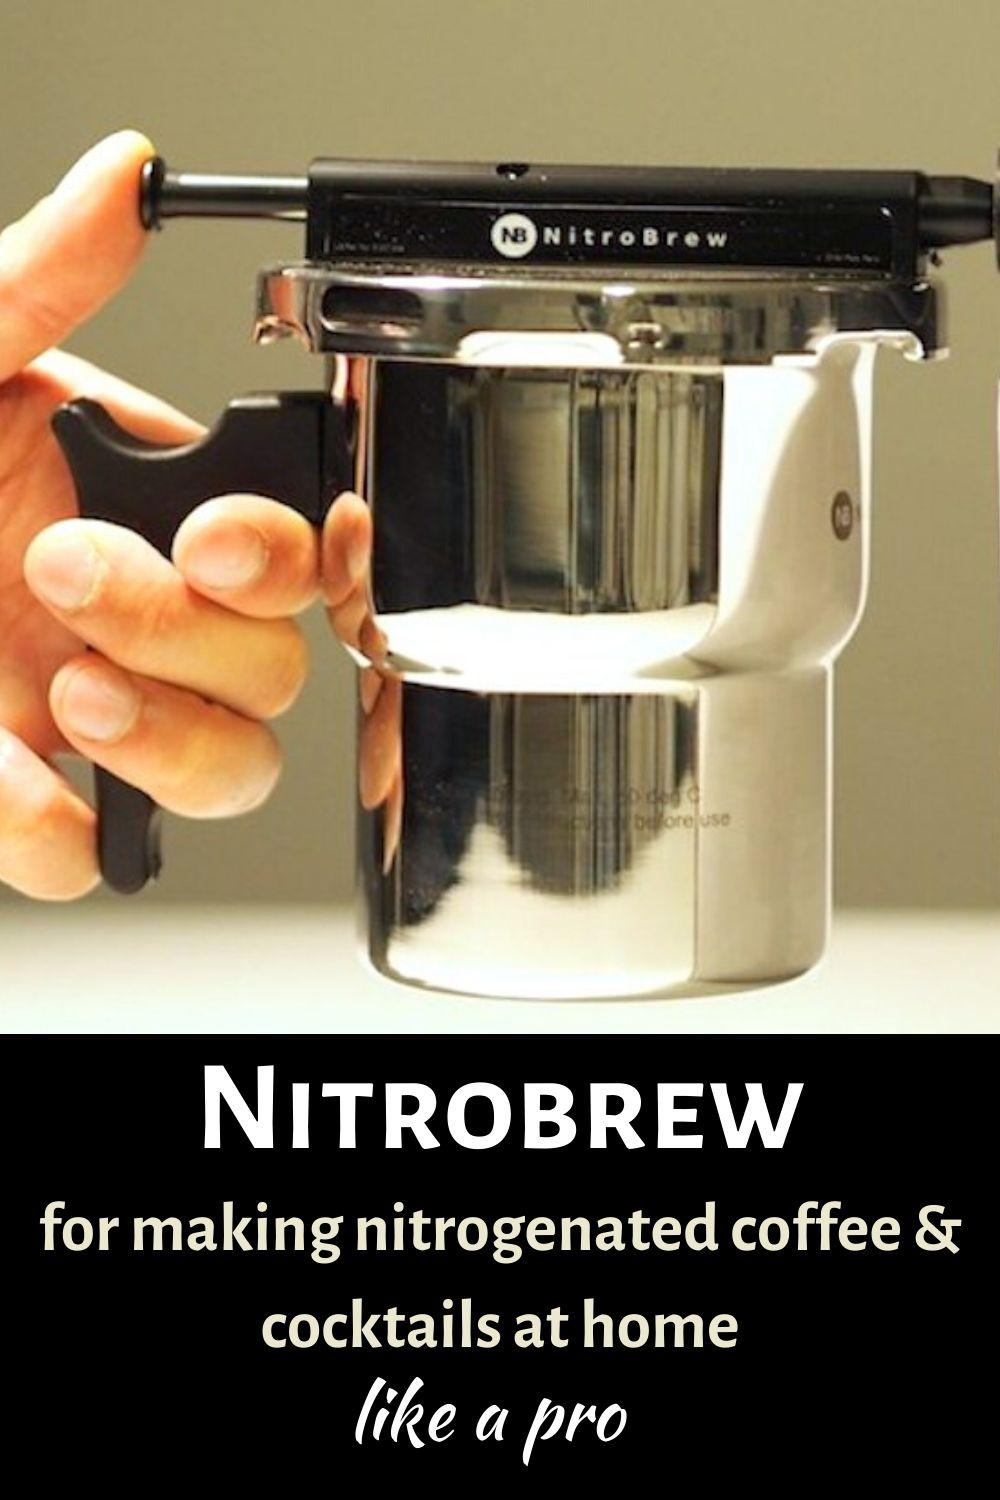 Nitrobrew for making nitrogenated coffee and cocktails at home